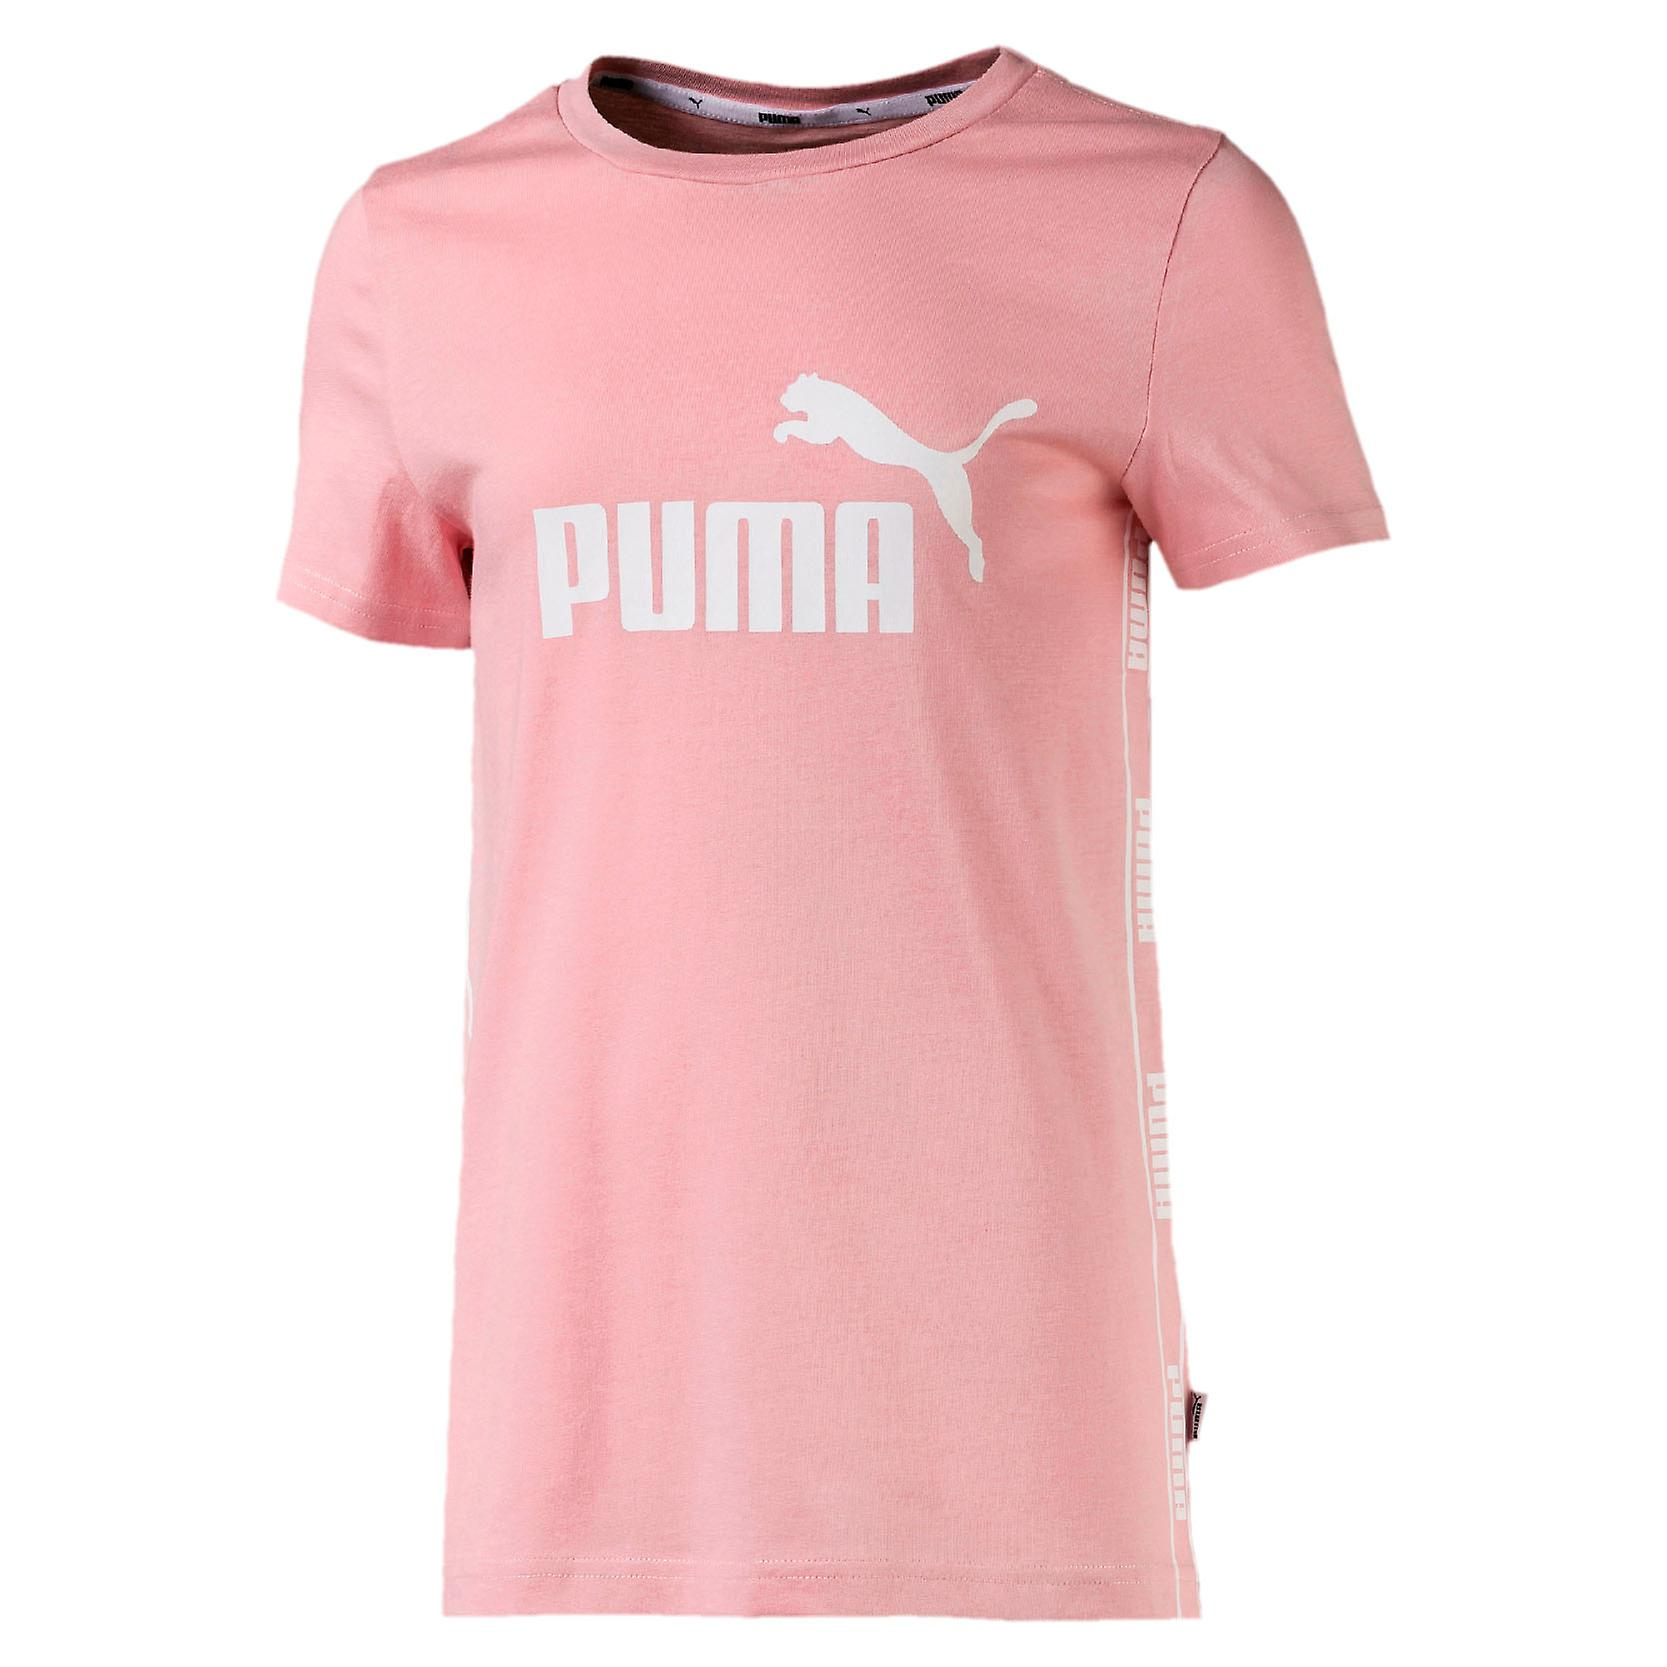 Puma Amplified Kids Girls Taped Sports T-Shirt Tee Pink/White